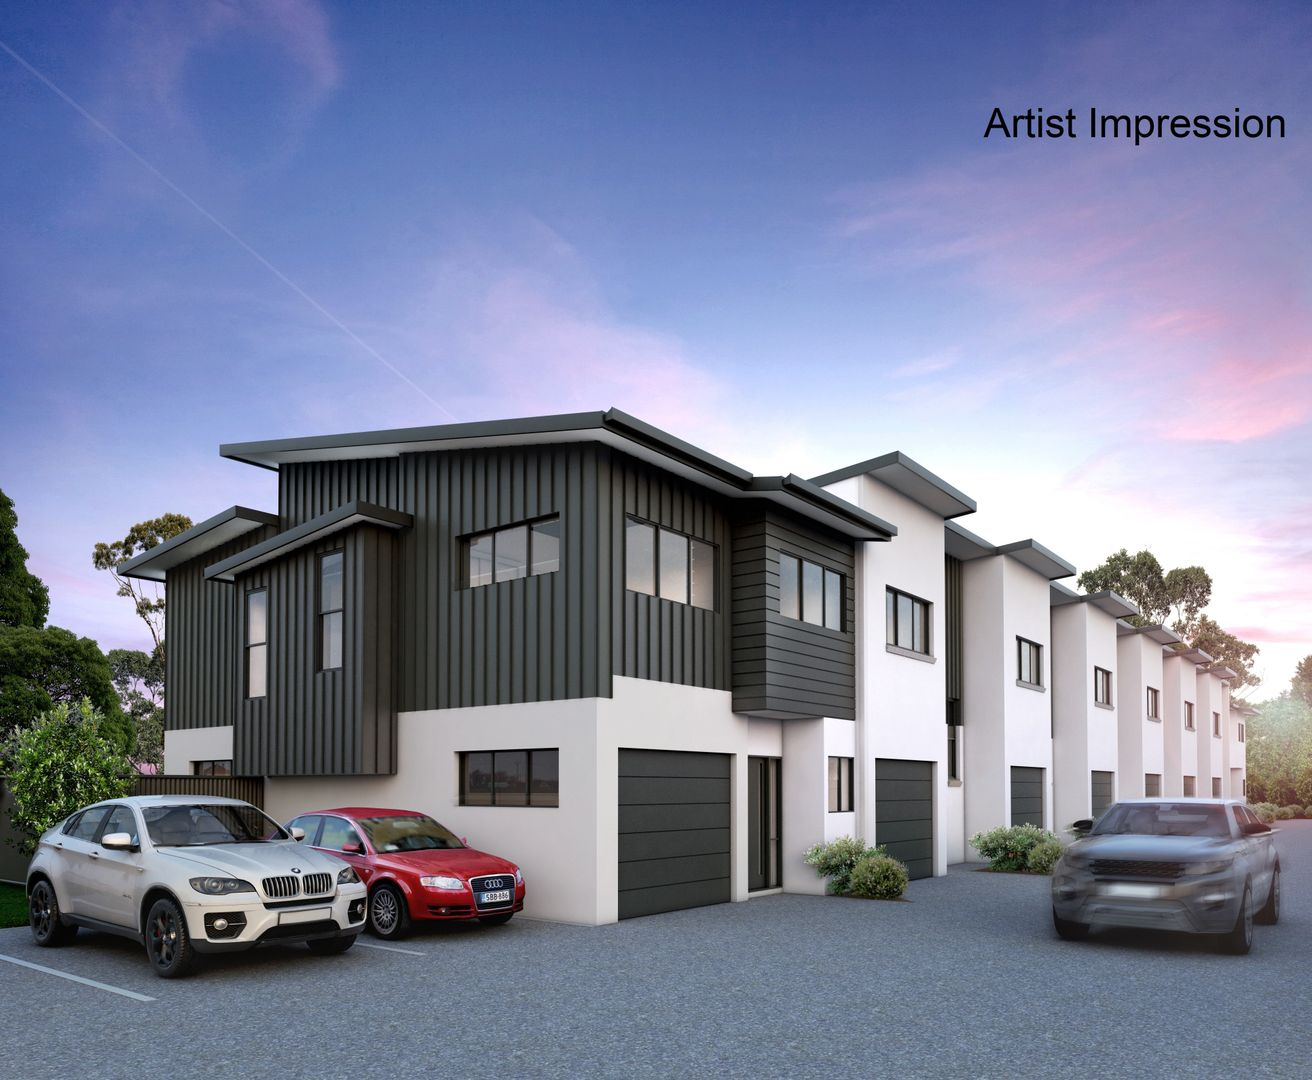 1-8/Lot 7 & 50 Hogbin Drive North, Coffs Harbour NSW 2450, Image 0